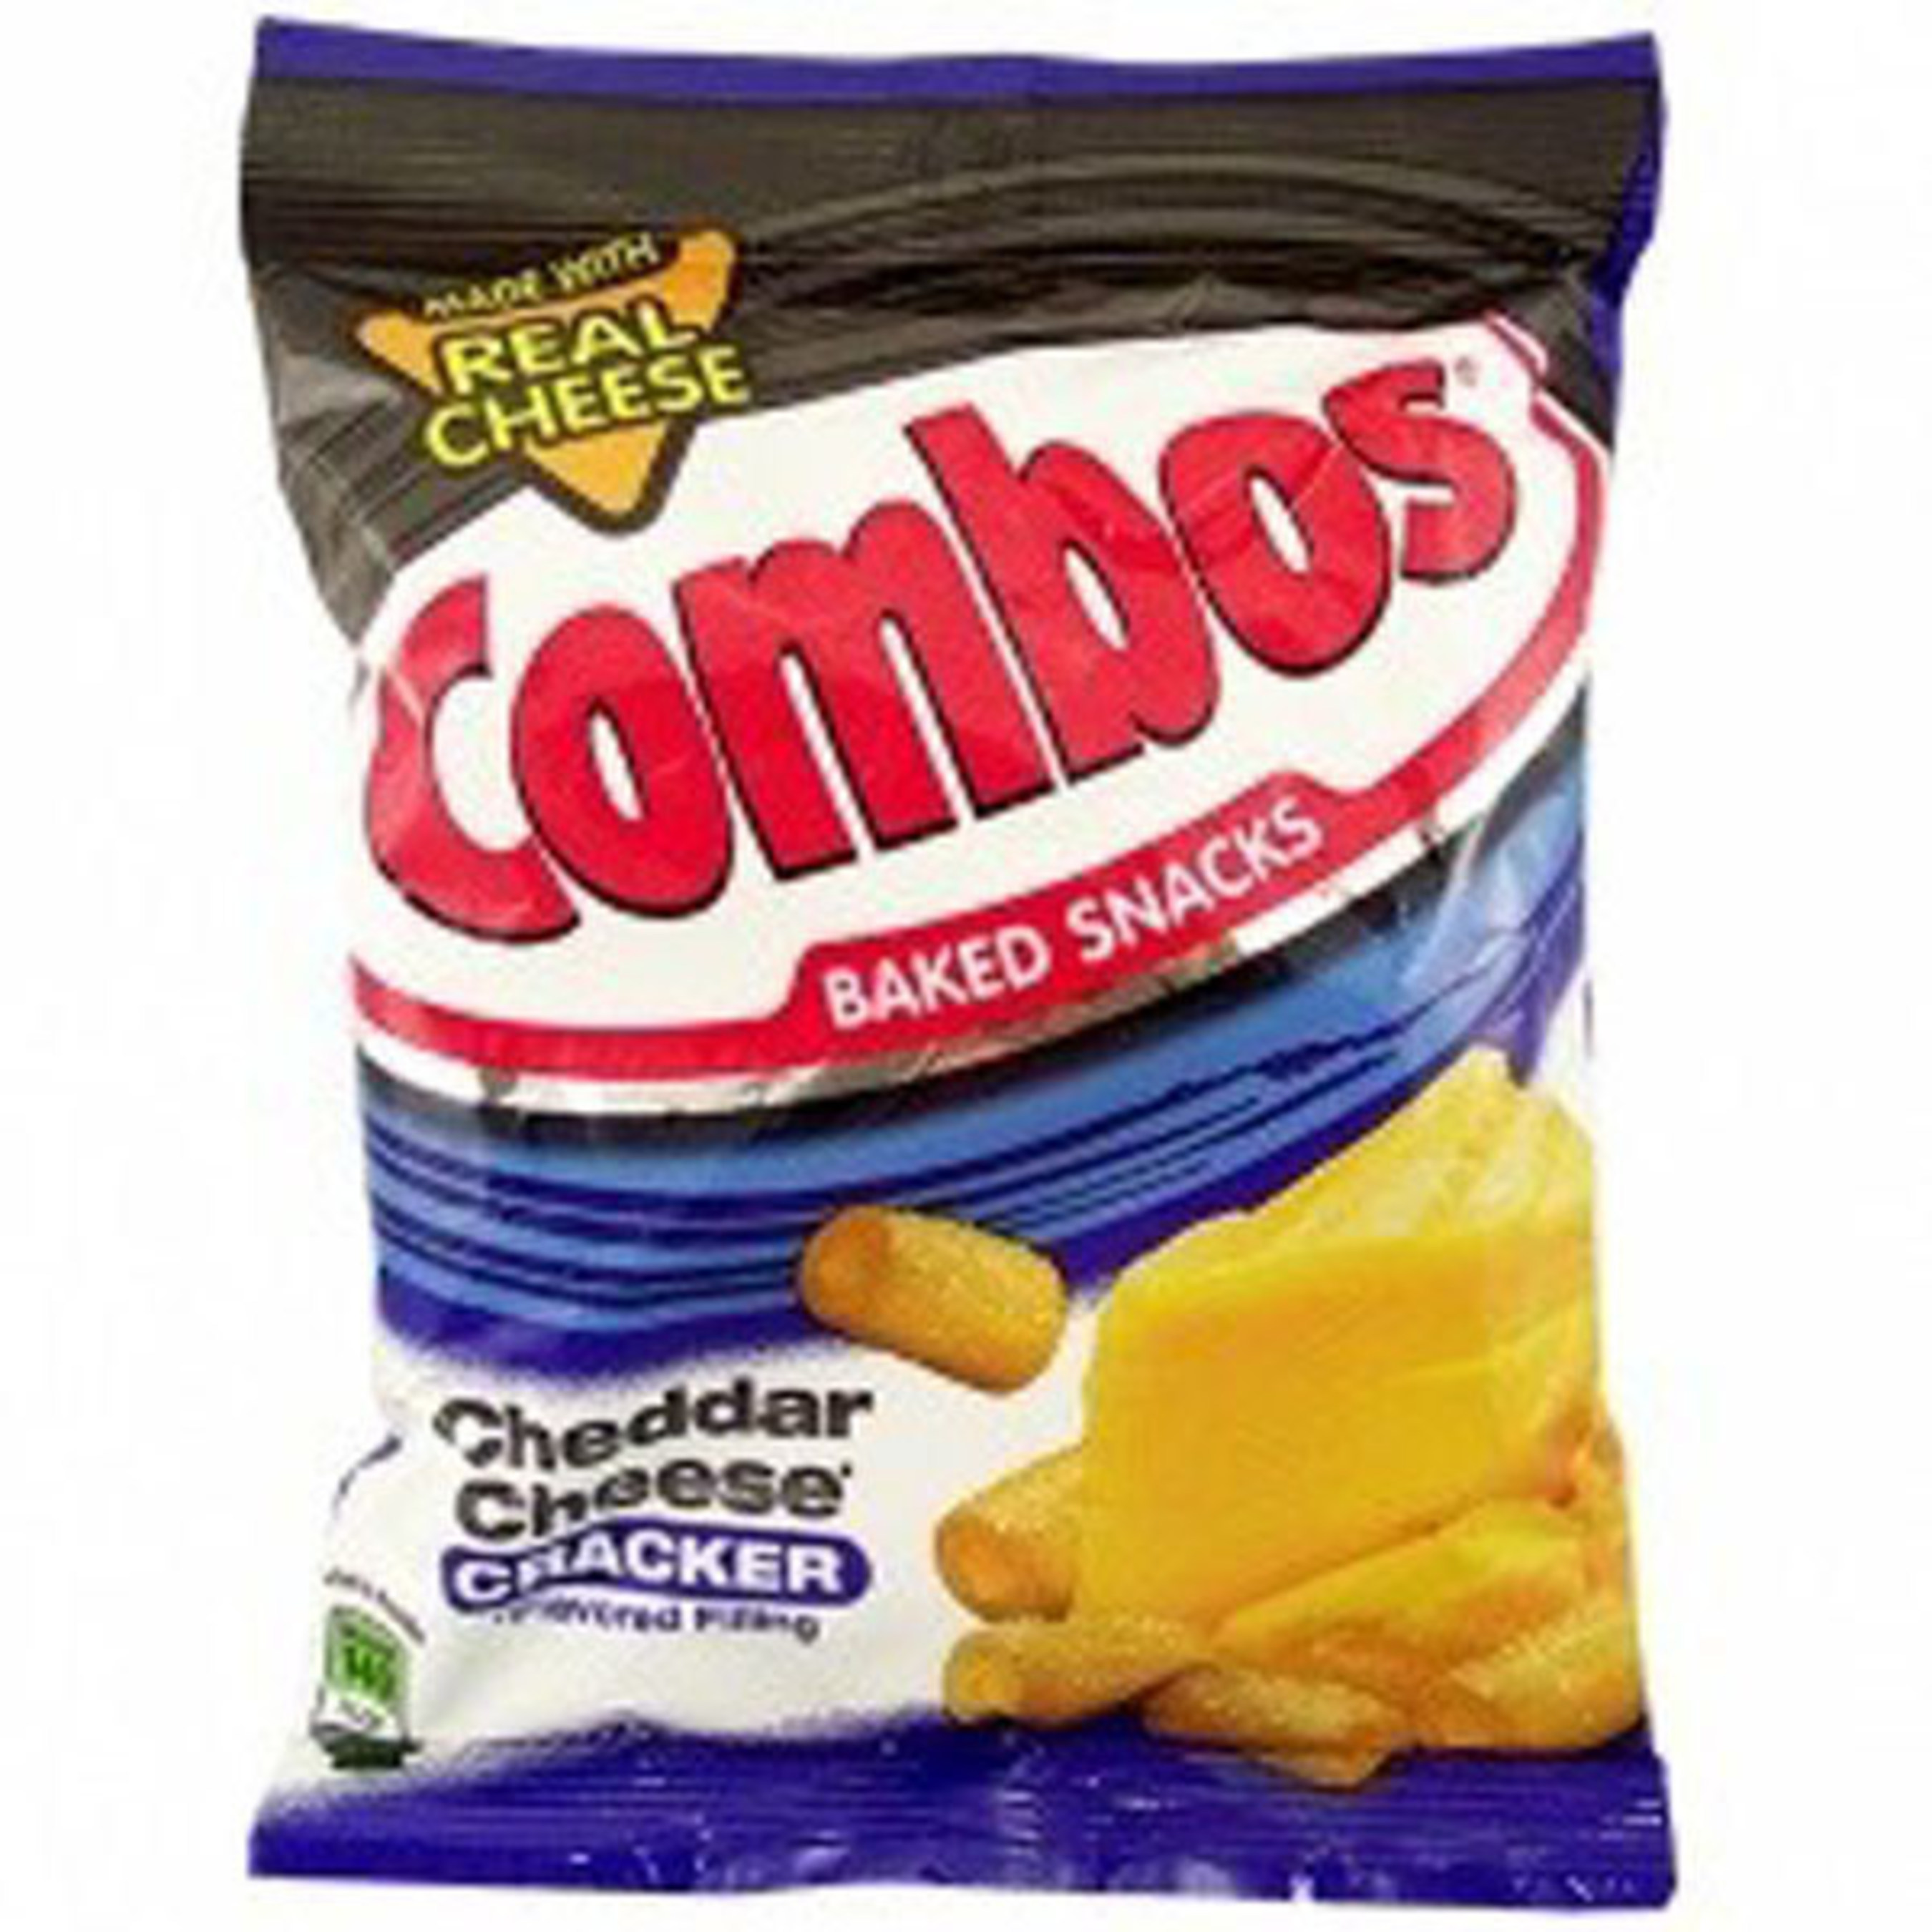 COMBOS CHEDDAR CHEESE CRACKER - FAMILY PEG PACK - 6.3 OZ - 12/CA